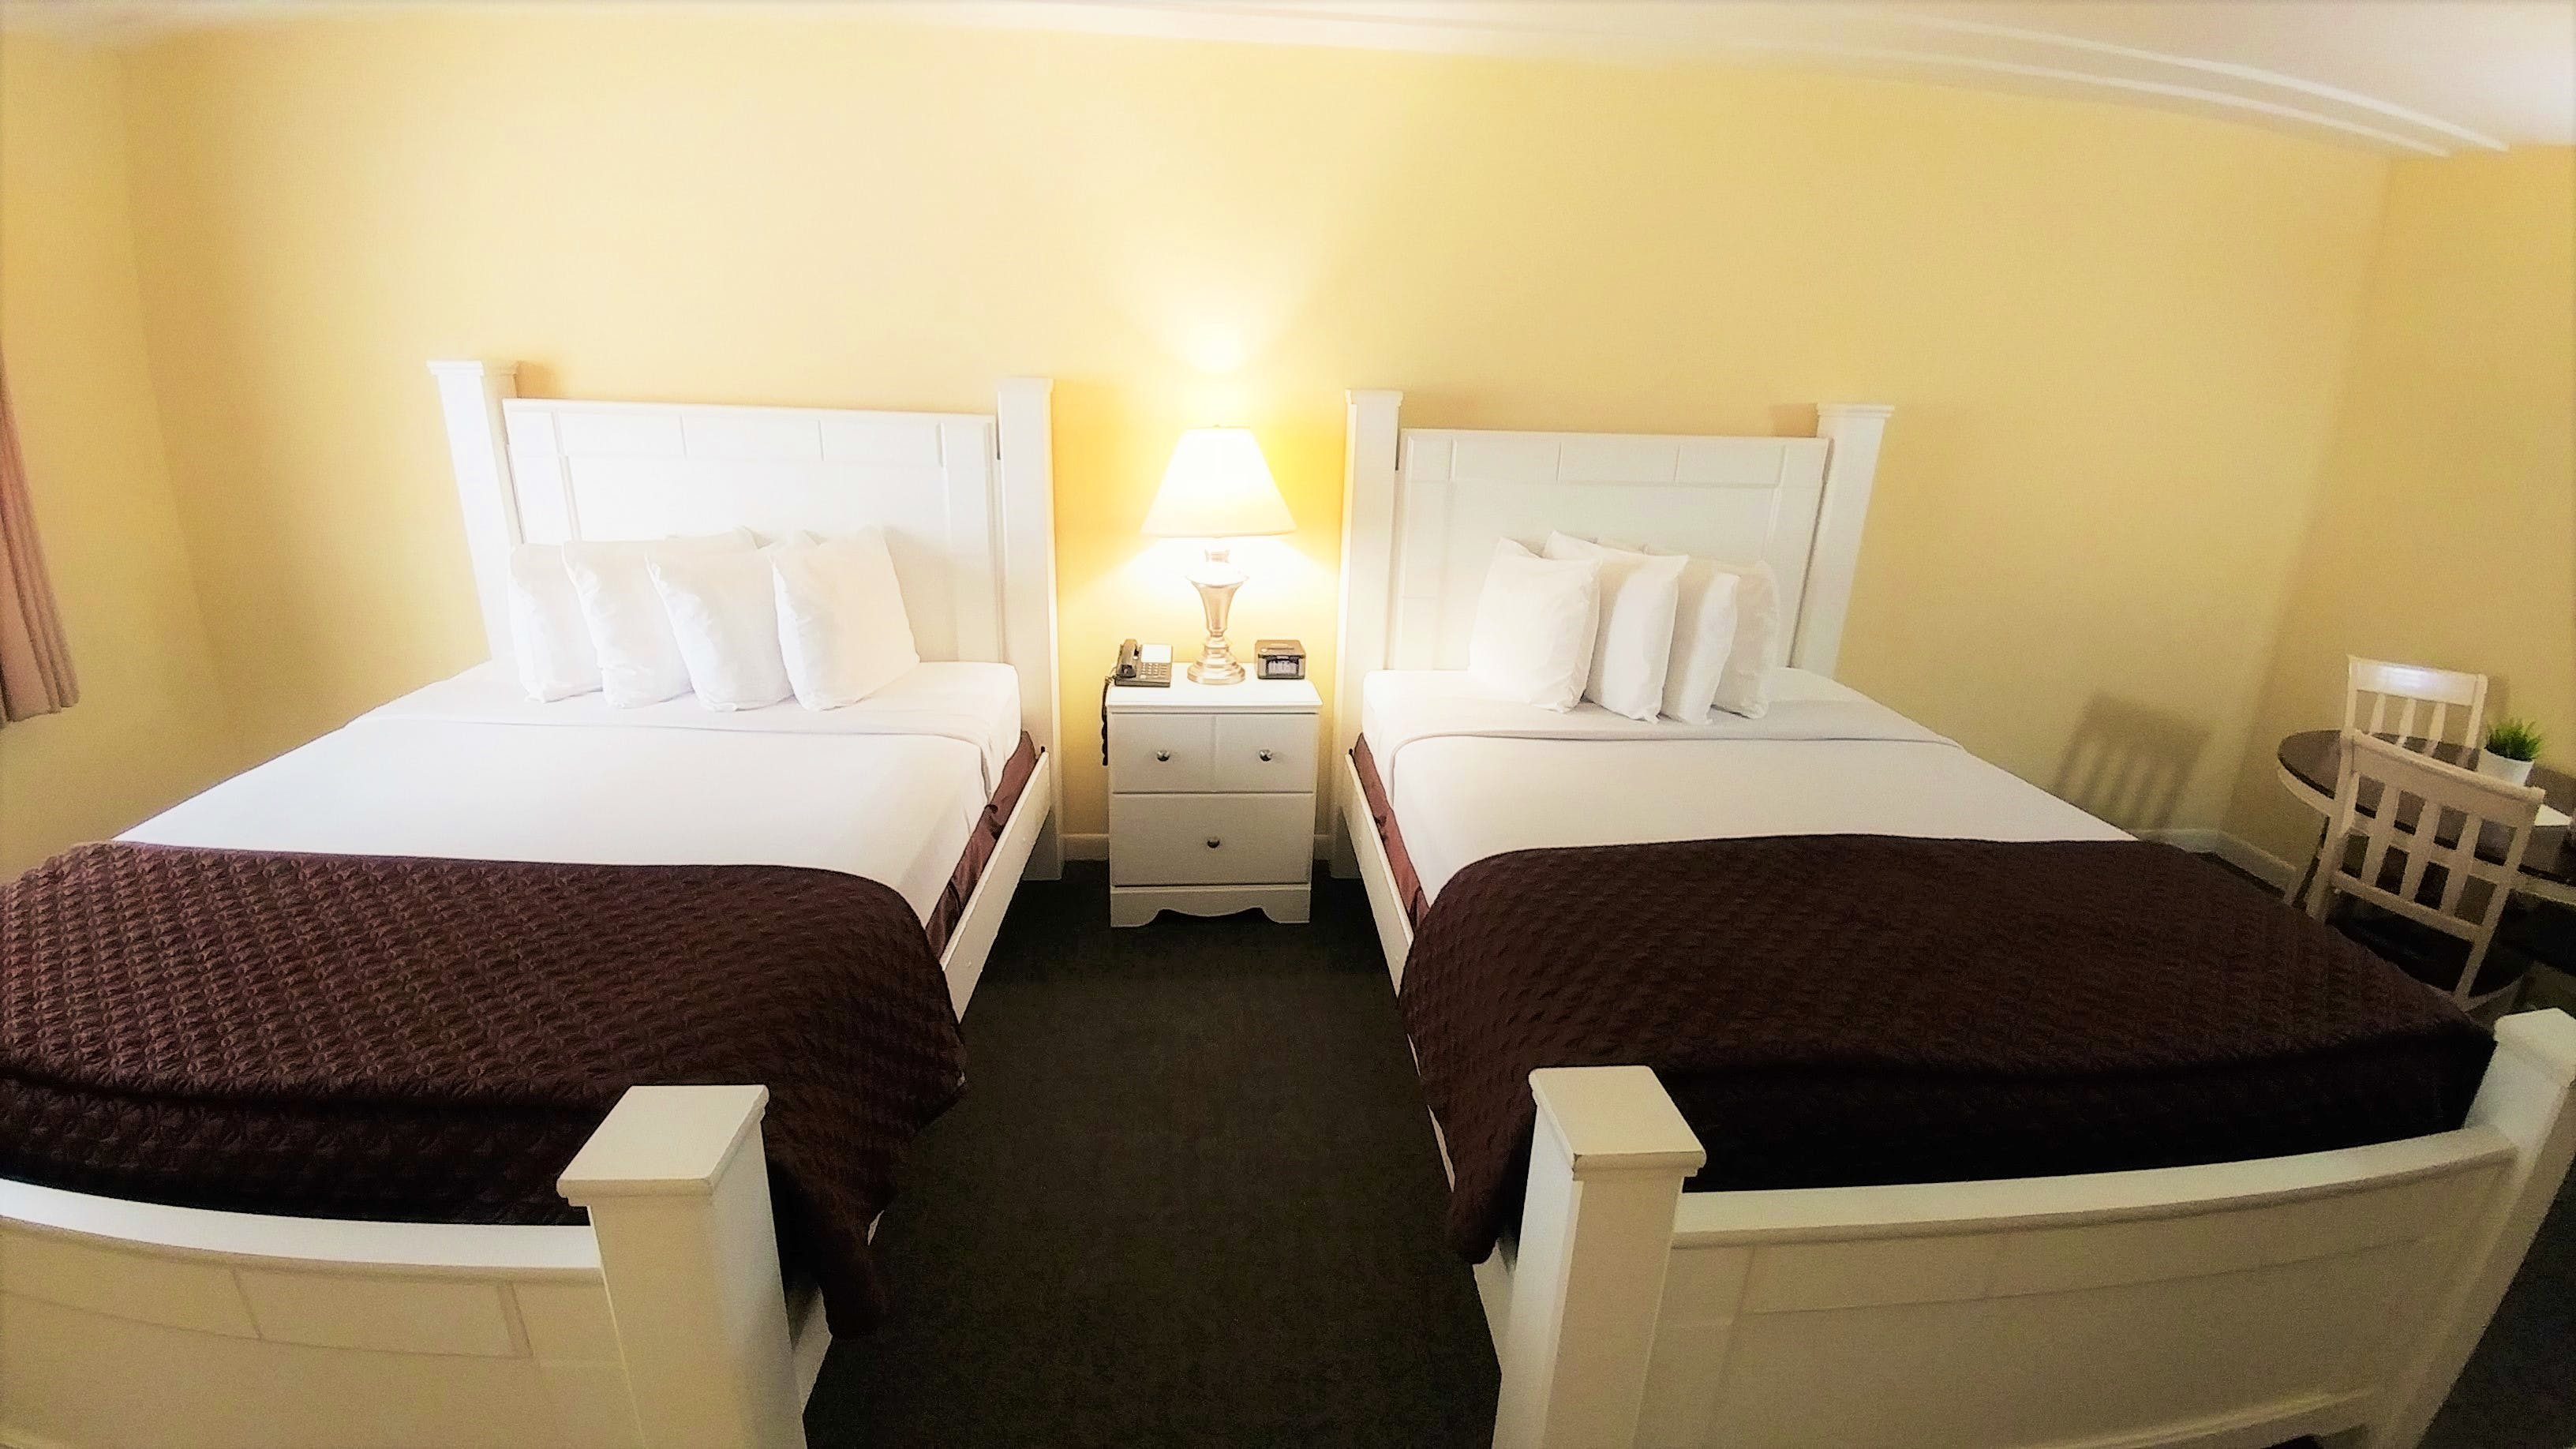 Hollywood Celebrity Hotel - 13 tips - Foursquare